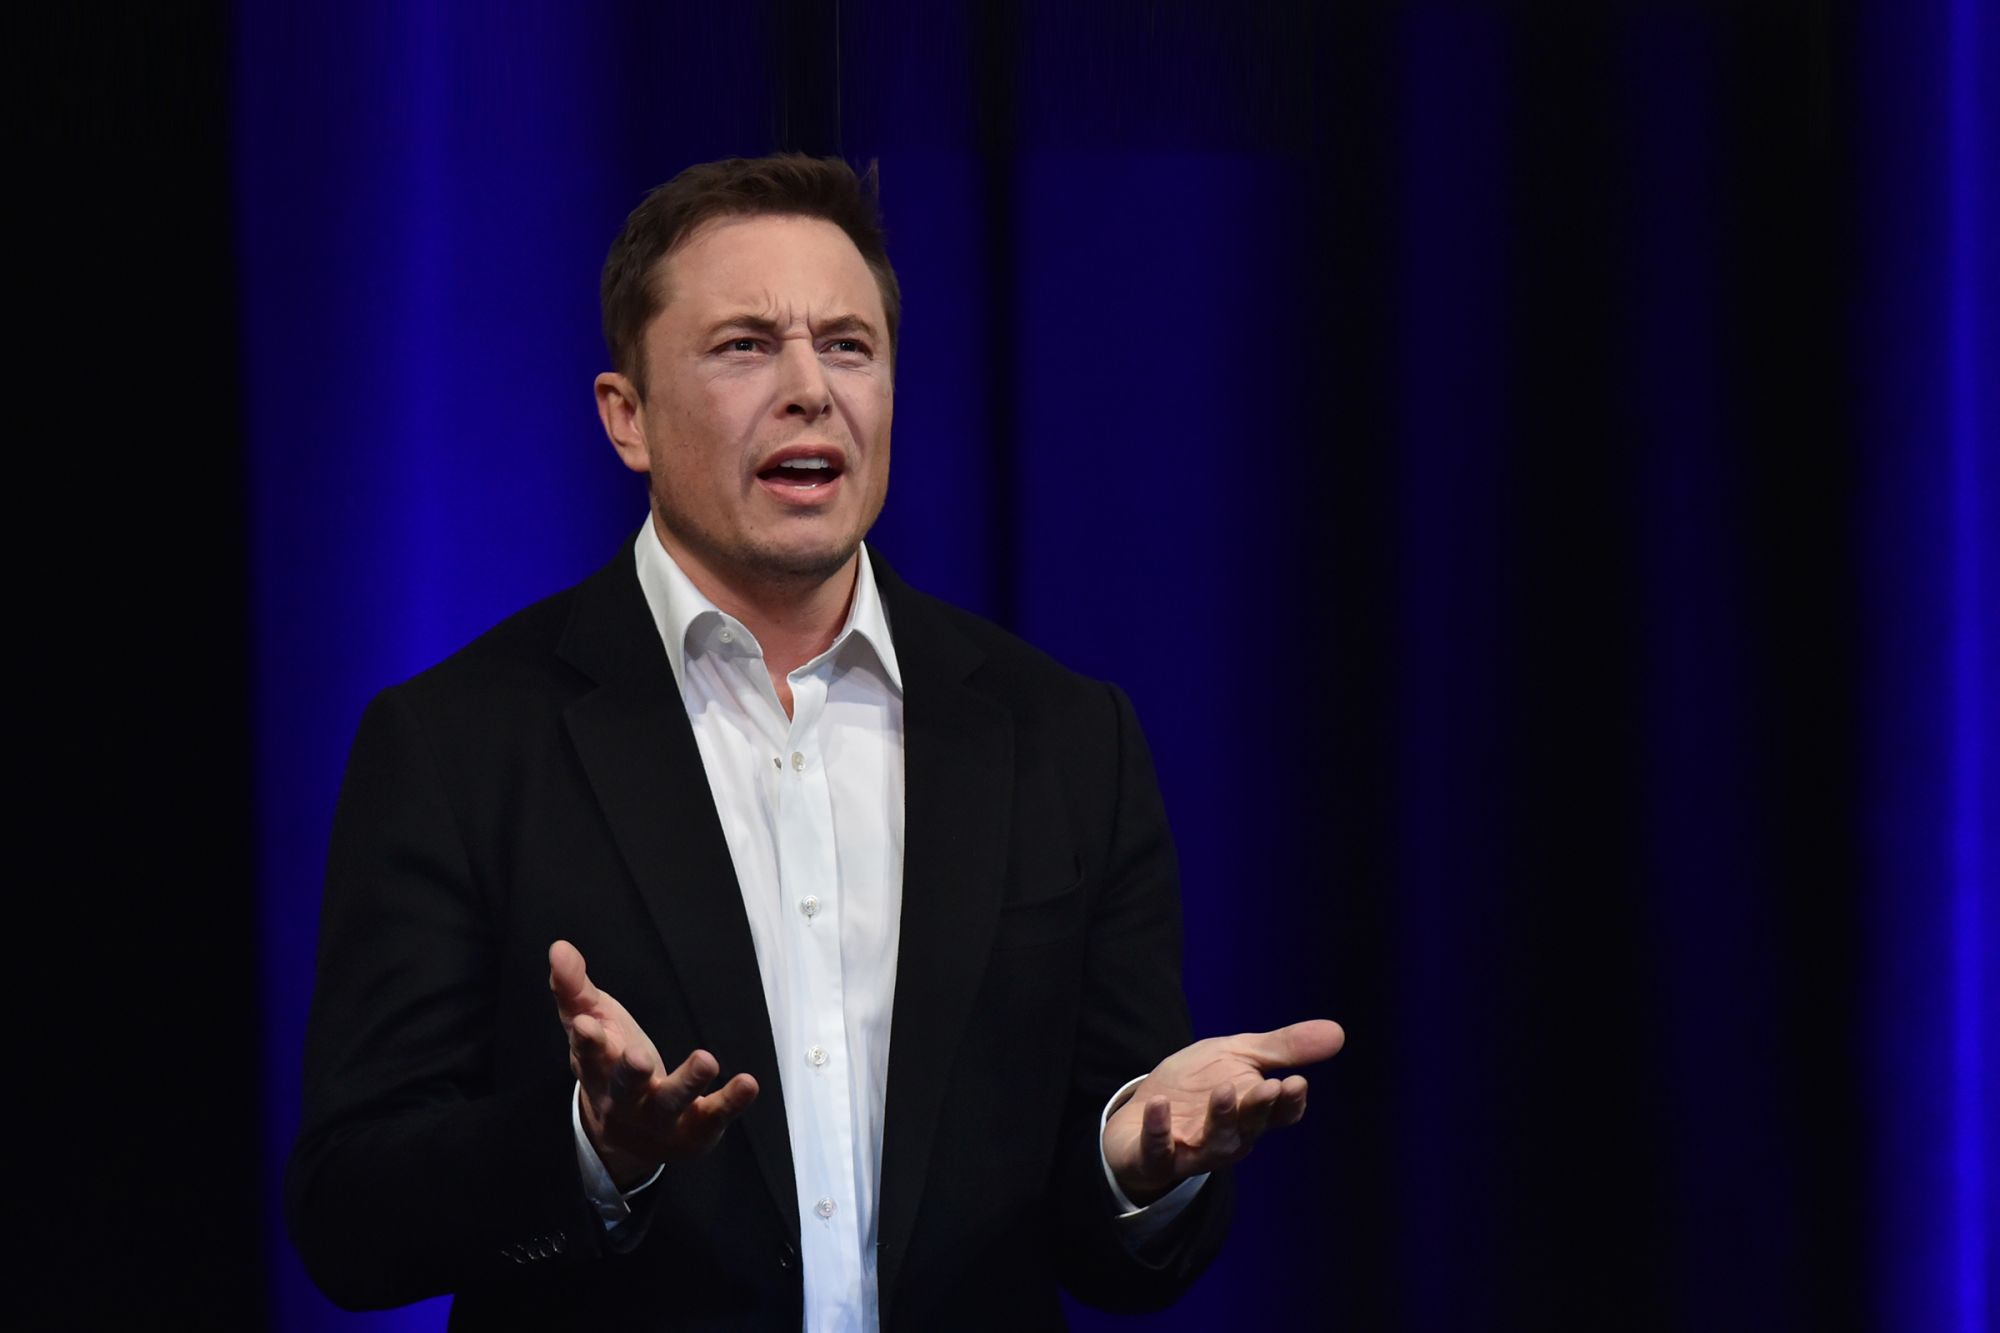 Wall Street Analysts Are Extremely Bearish on Tesla. Here's Why.